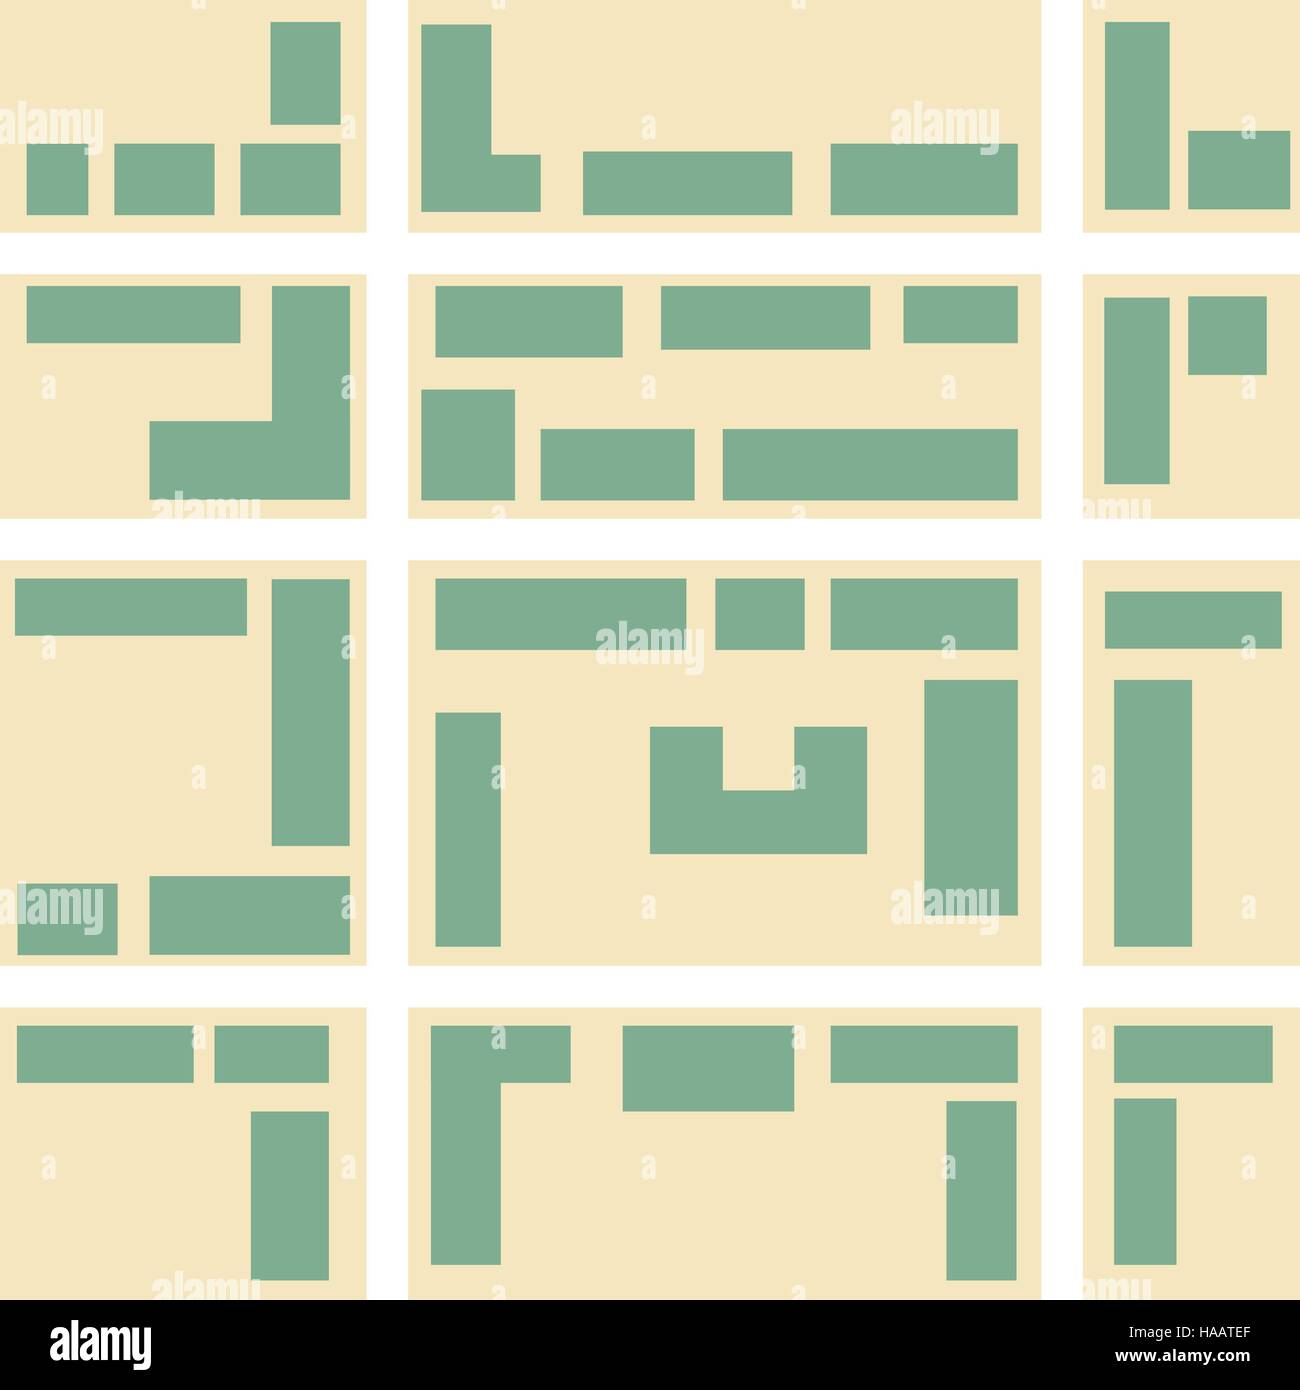 City map pattern. - Stock Vector